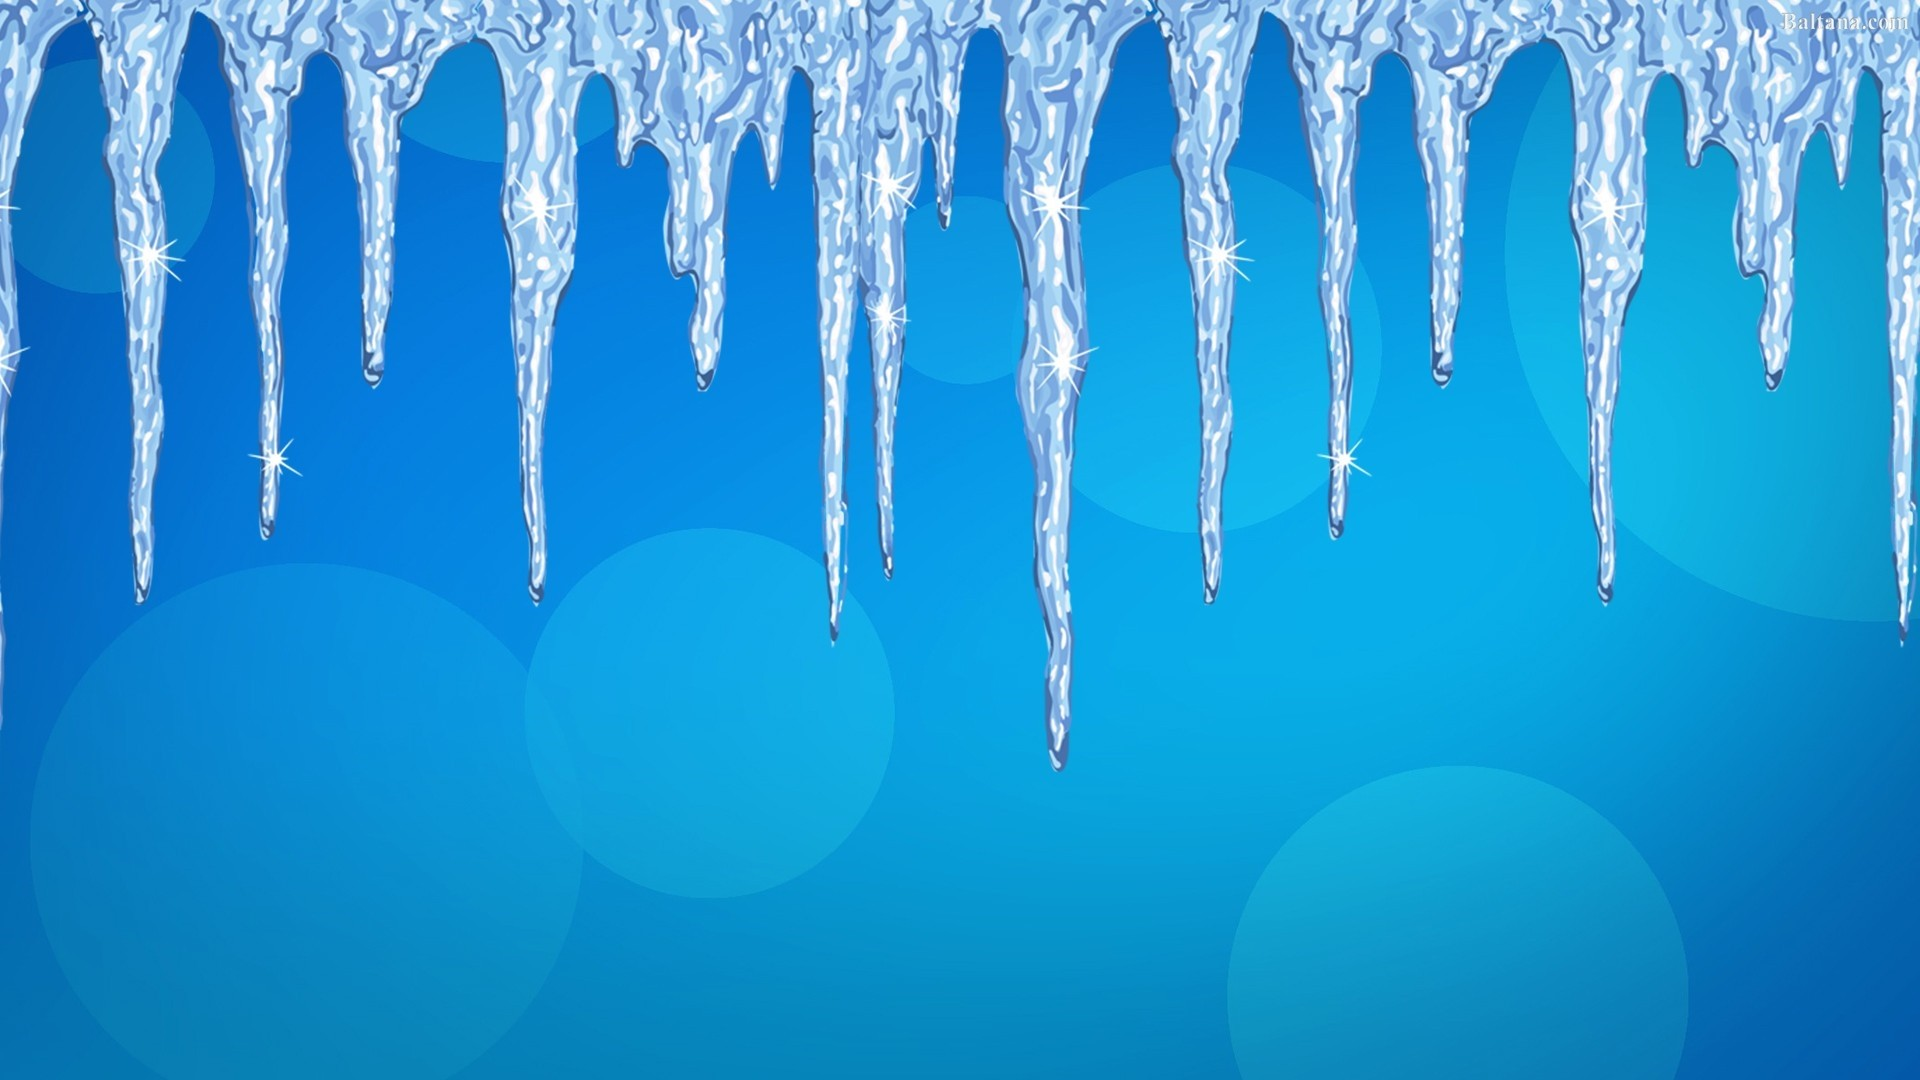 Icicles Wallpaper theme